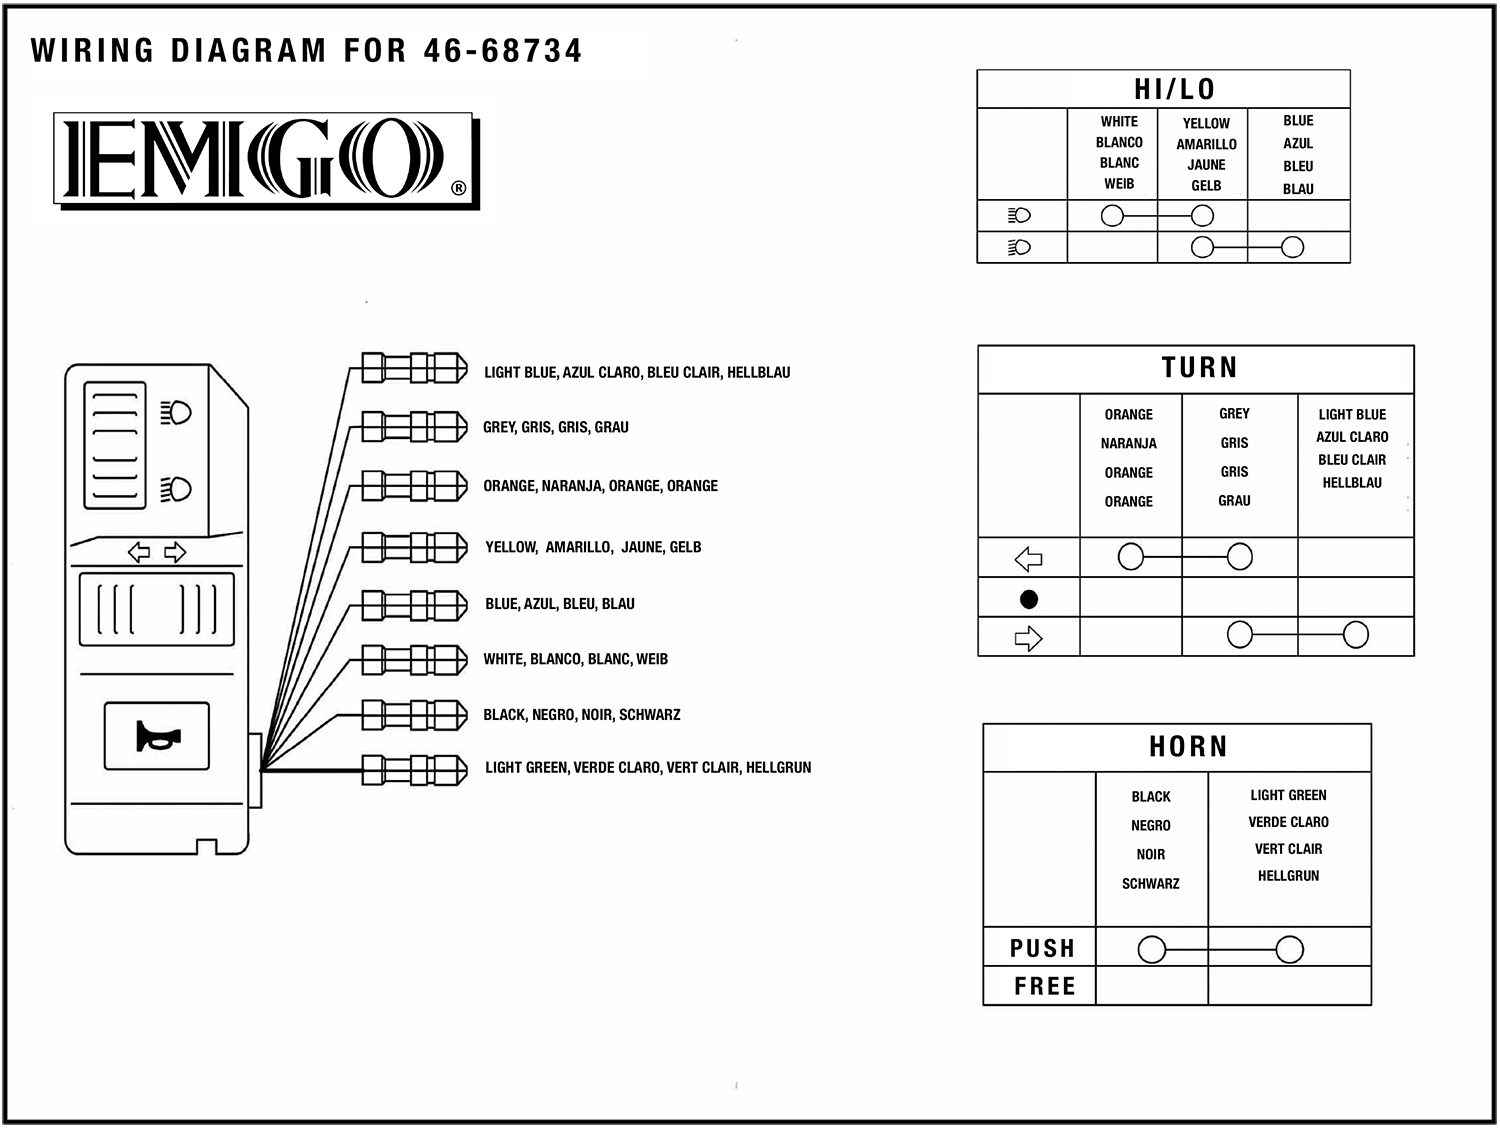 2006 tank 150 scooter wiring diagram trusted wiring diagram u2022 rh soulmatestyle co Electric Scooter Wiring Diagrams 49Cc Scooter Wiring Diagram